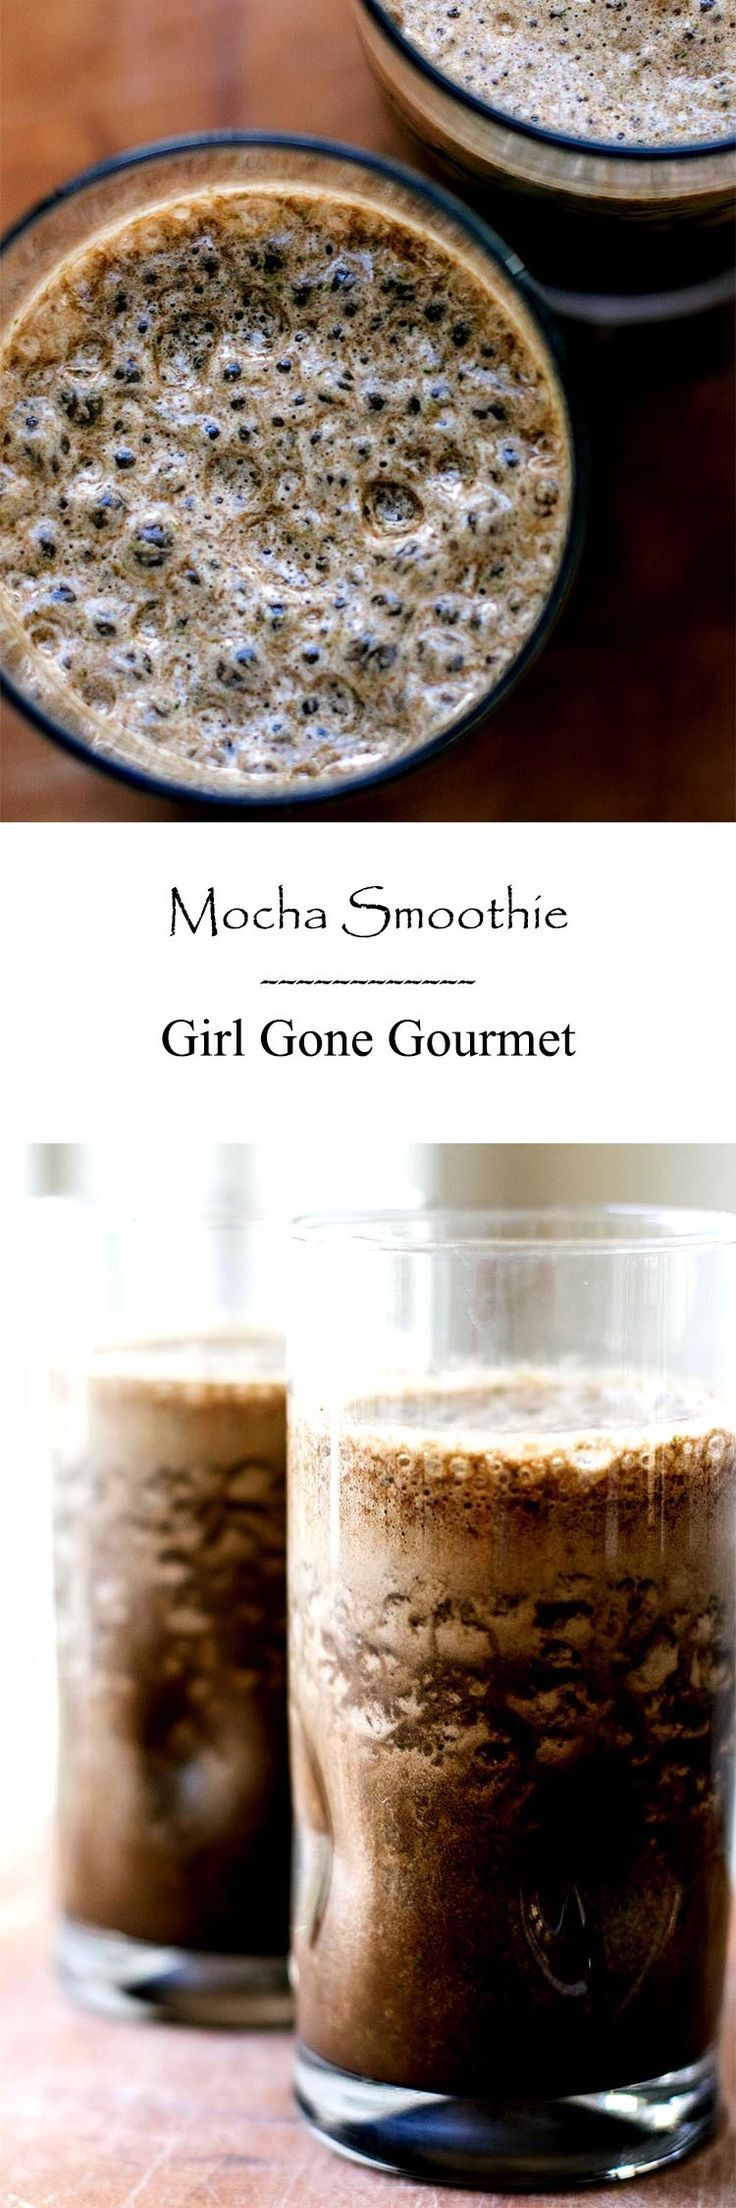 A chocolaty coffee smoothie with a secret healthy twist! from www.girlgonegourmet.com